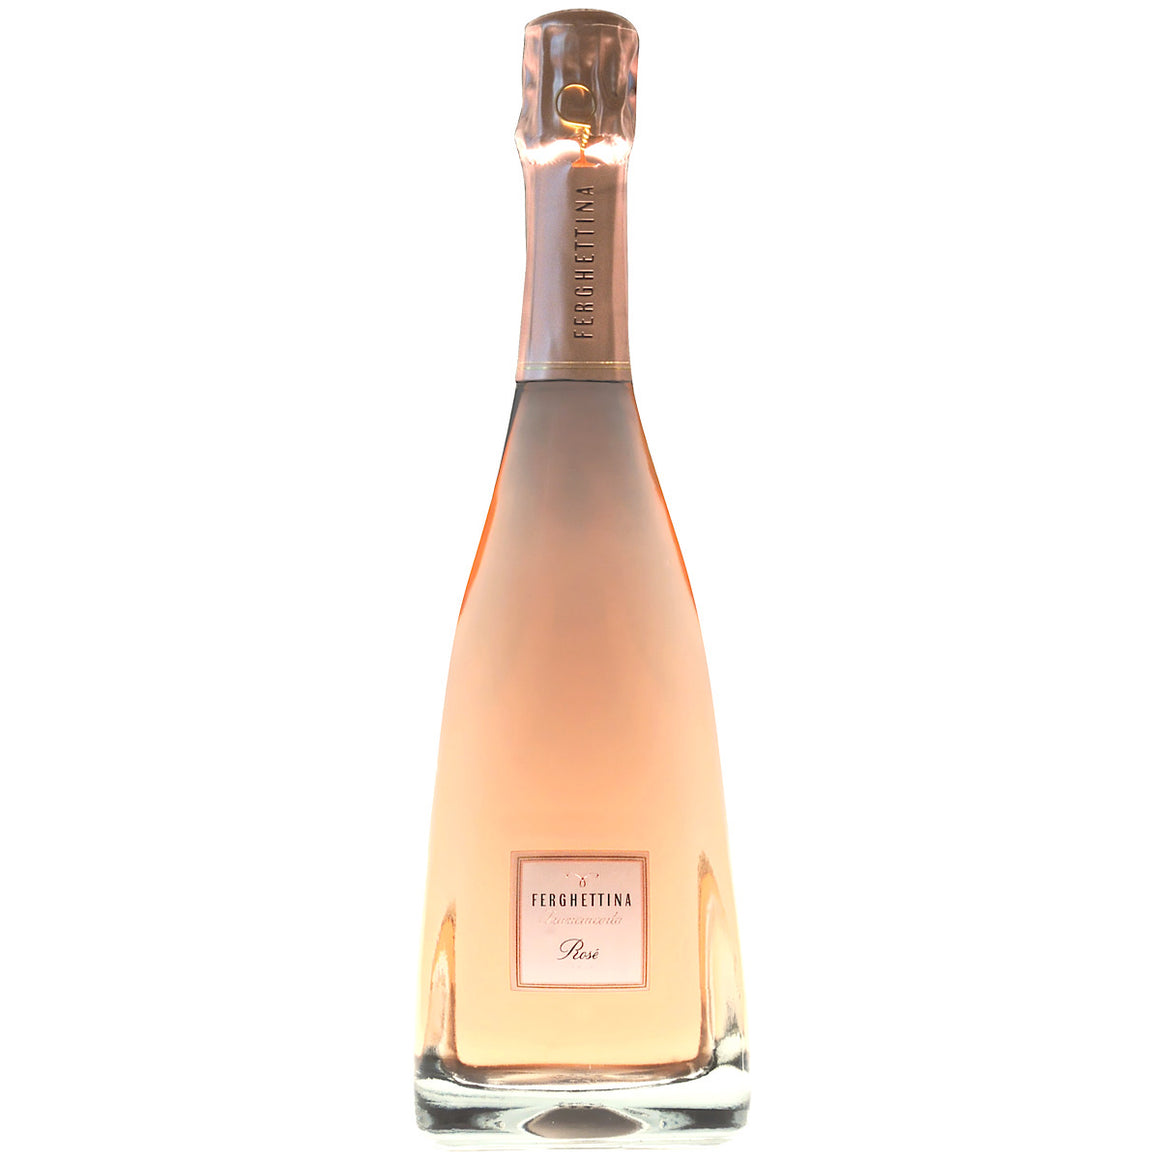 Ferghettina Franciacorta Rosé Brut 6 Bottle Case 2015